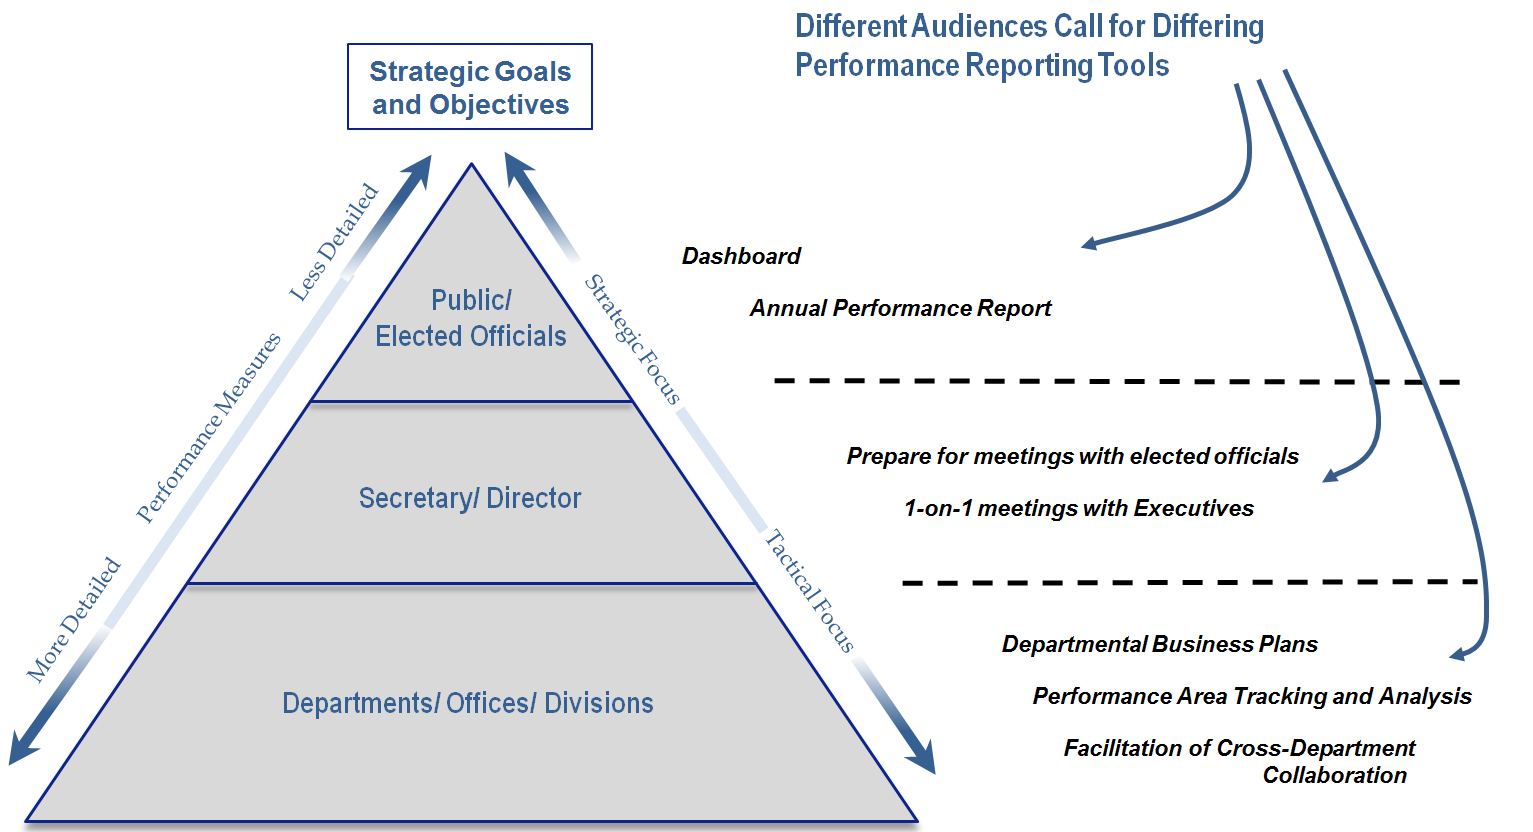 Pyramid with departments/offices/divisions on bottom, secretary/director middle, and public/elected officials at the top. Information is more detailed and tactically focused at the bottom and less detailed and more strategic at the top. Different audiences call for differing performance reporting tools: dashboard and annual performance report at top, one on one meetings with executives in the middle, and departmental business plans and perforamnce area tracking and analysis at the bottom.